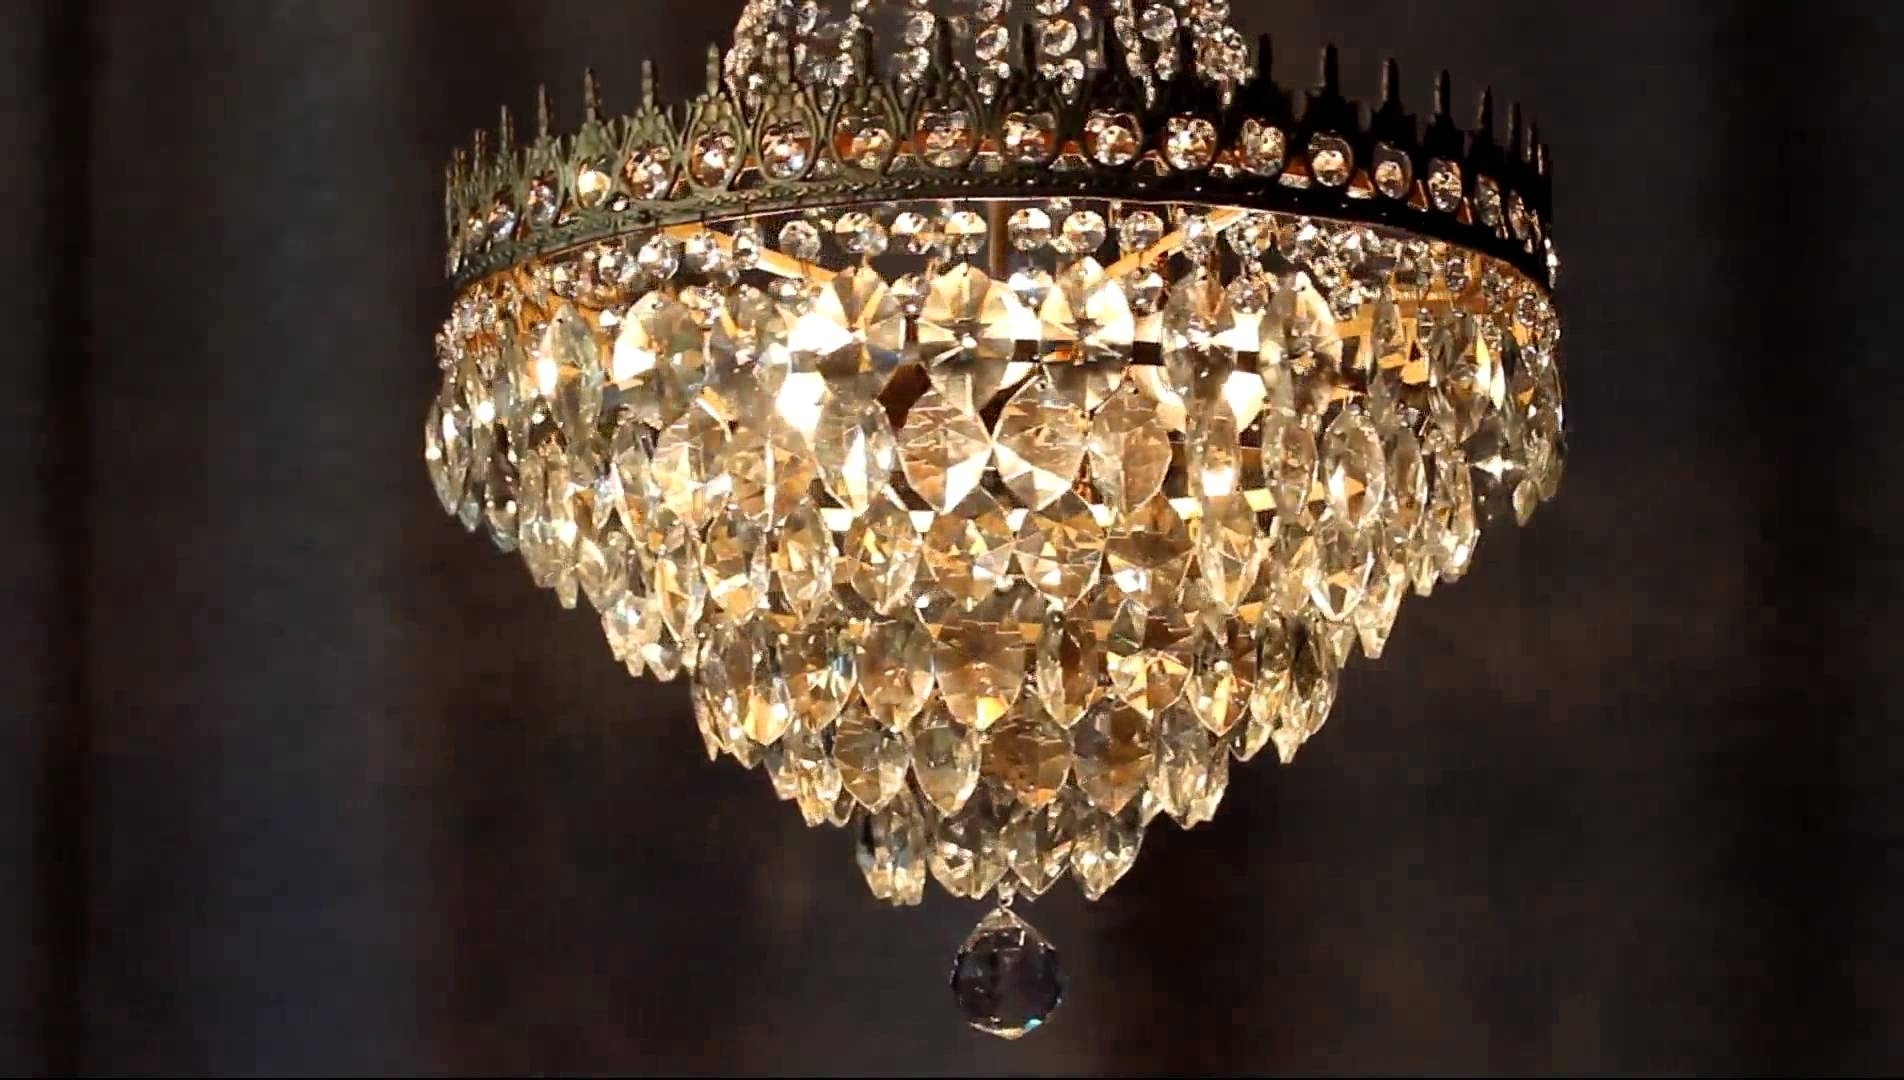 Huge Antique Luster Crystal Candelabra Chandelier Lighting Brass Old Throughout Well Liked Huge Chandeliers (View 12 of 20)